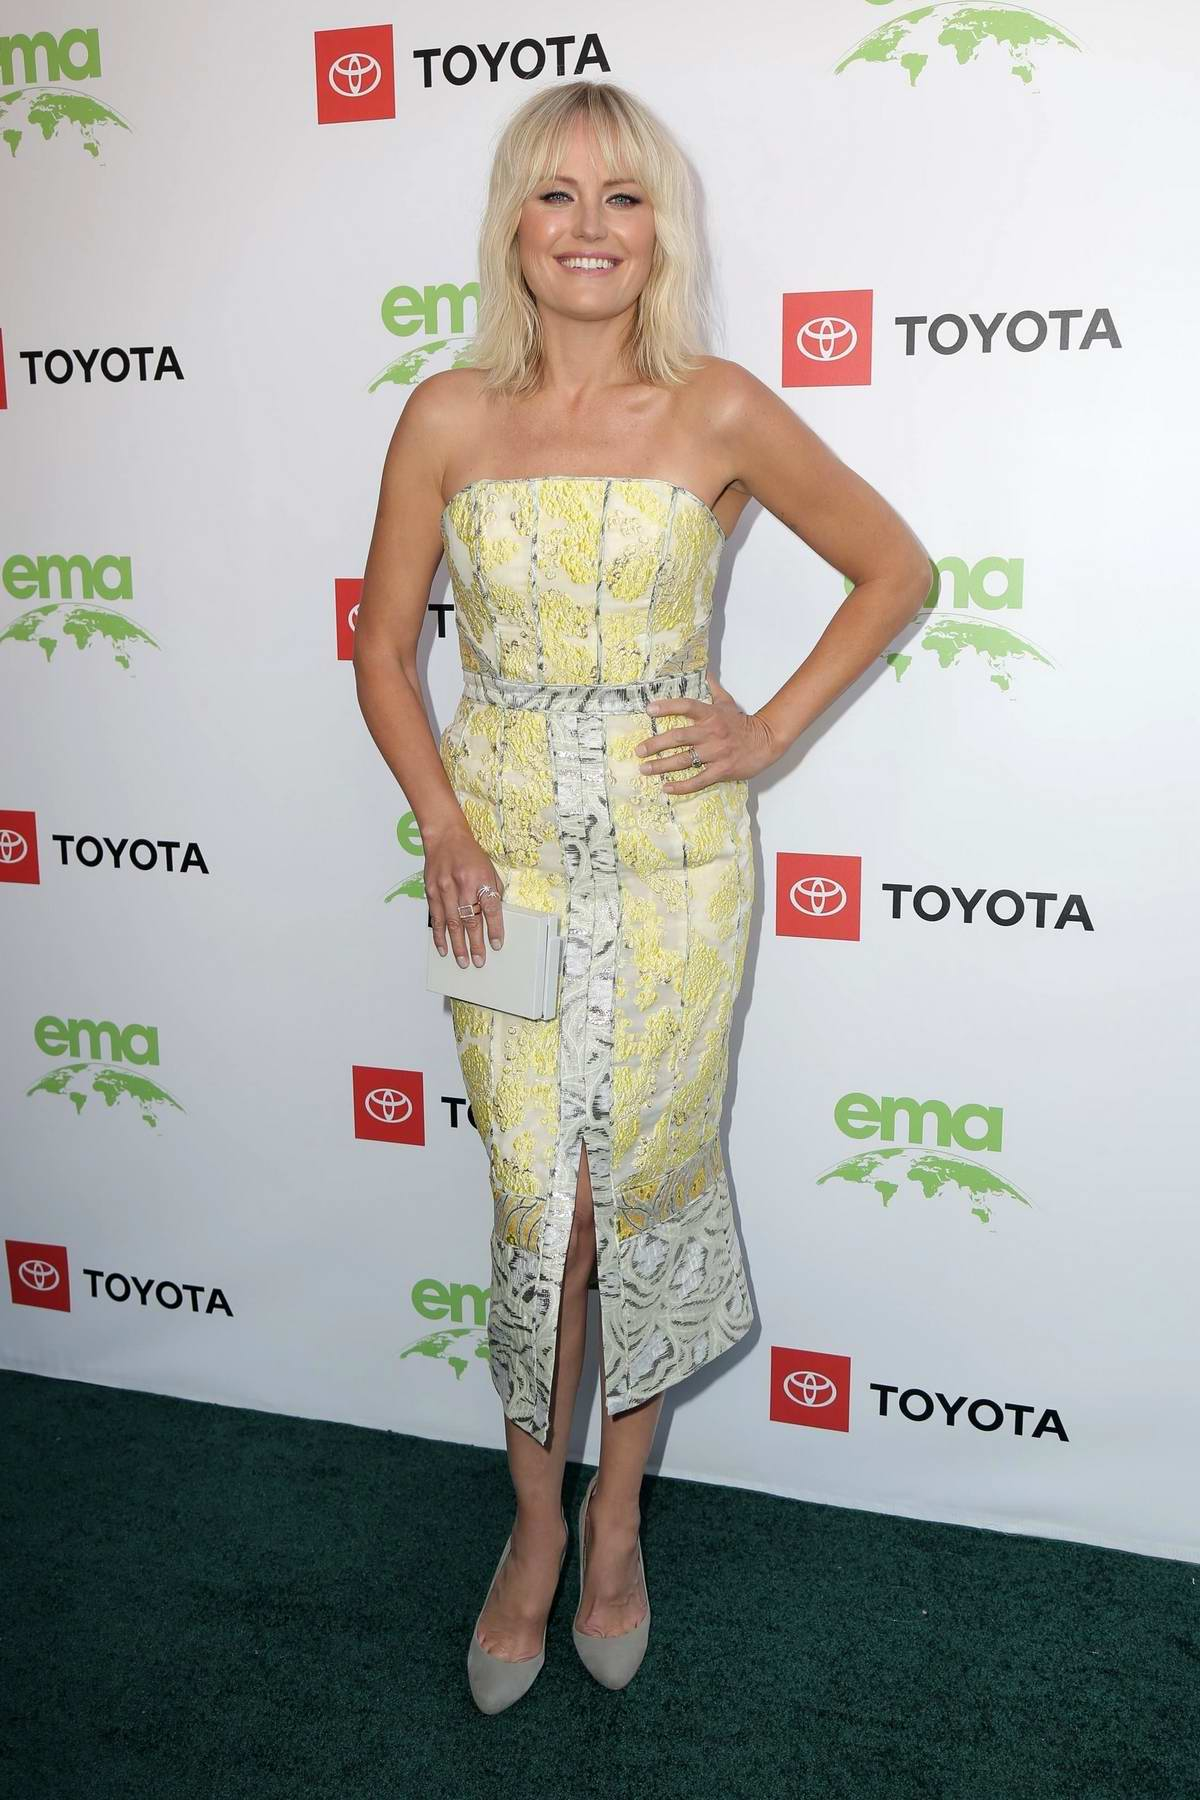 Malin Akerman attends the 29th Annual Environmental Media Awards at The Montage Hotel in Beverly Hills, Los Angeles